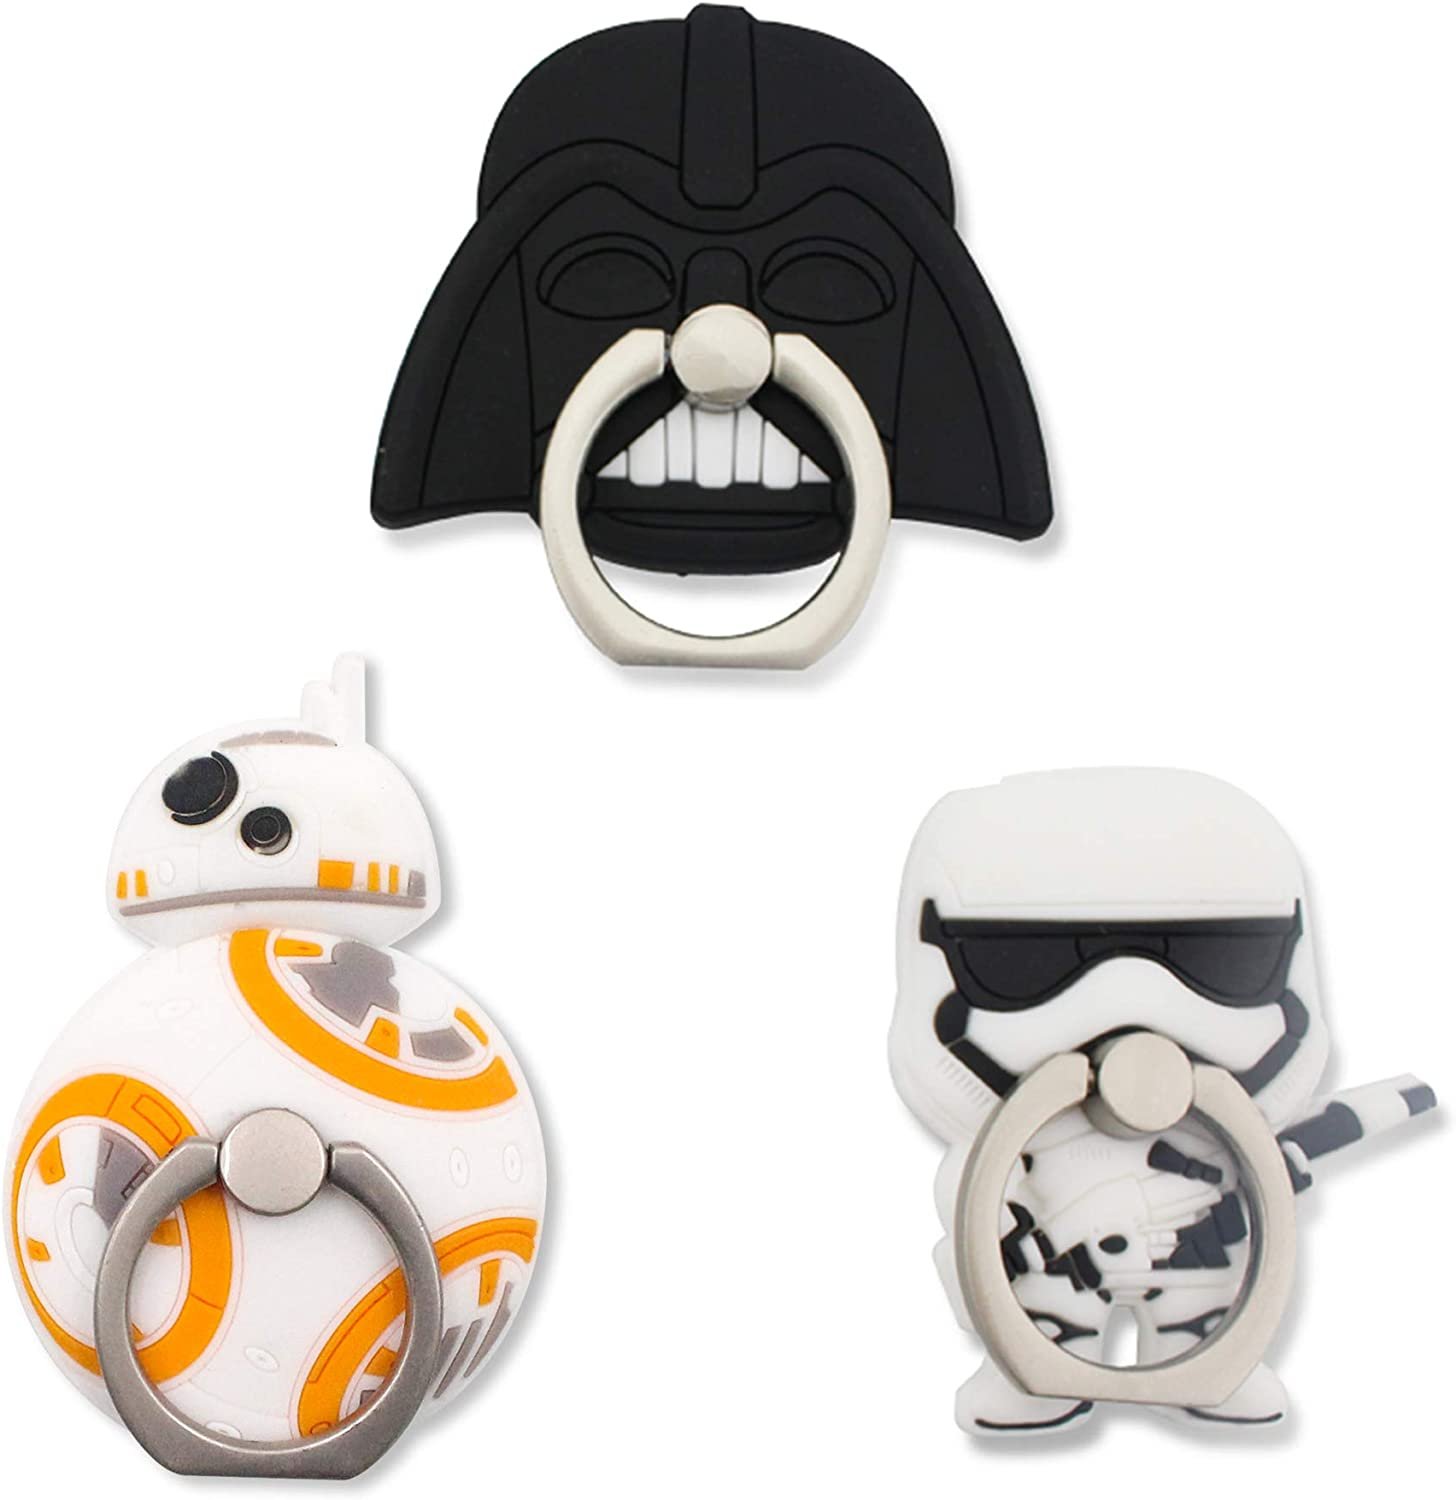 holder stand Star Wars Cell phone pillow